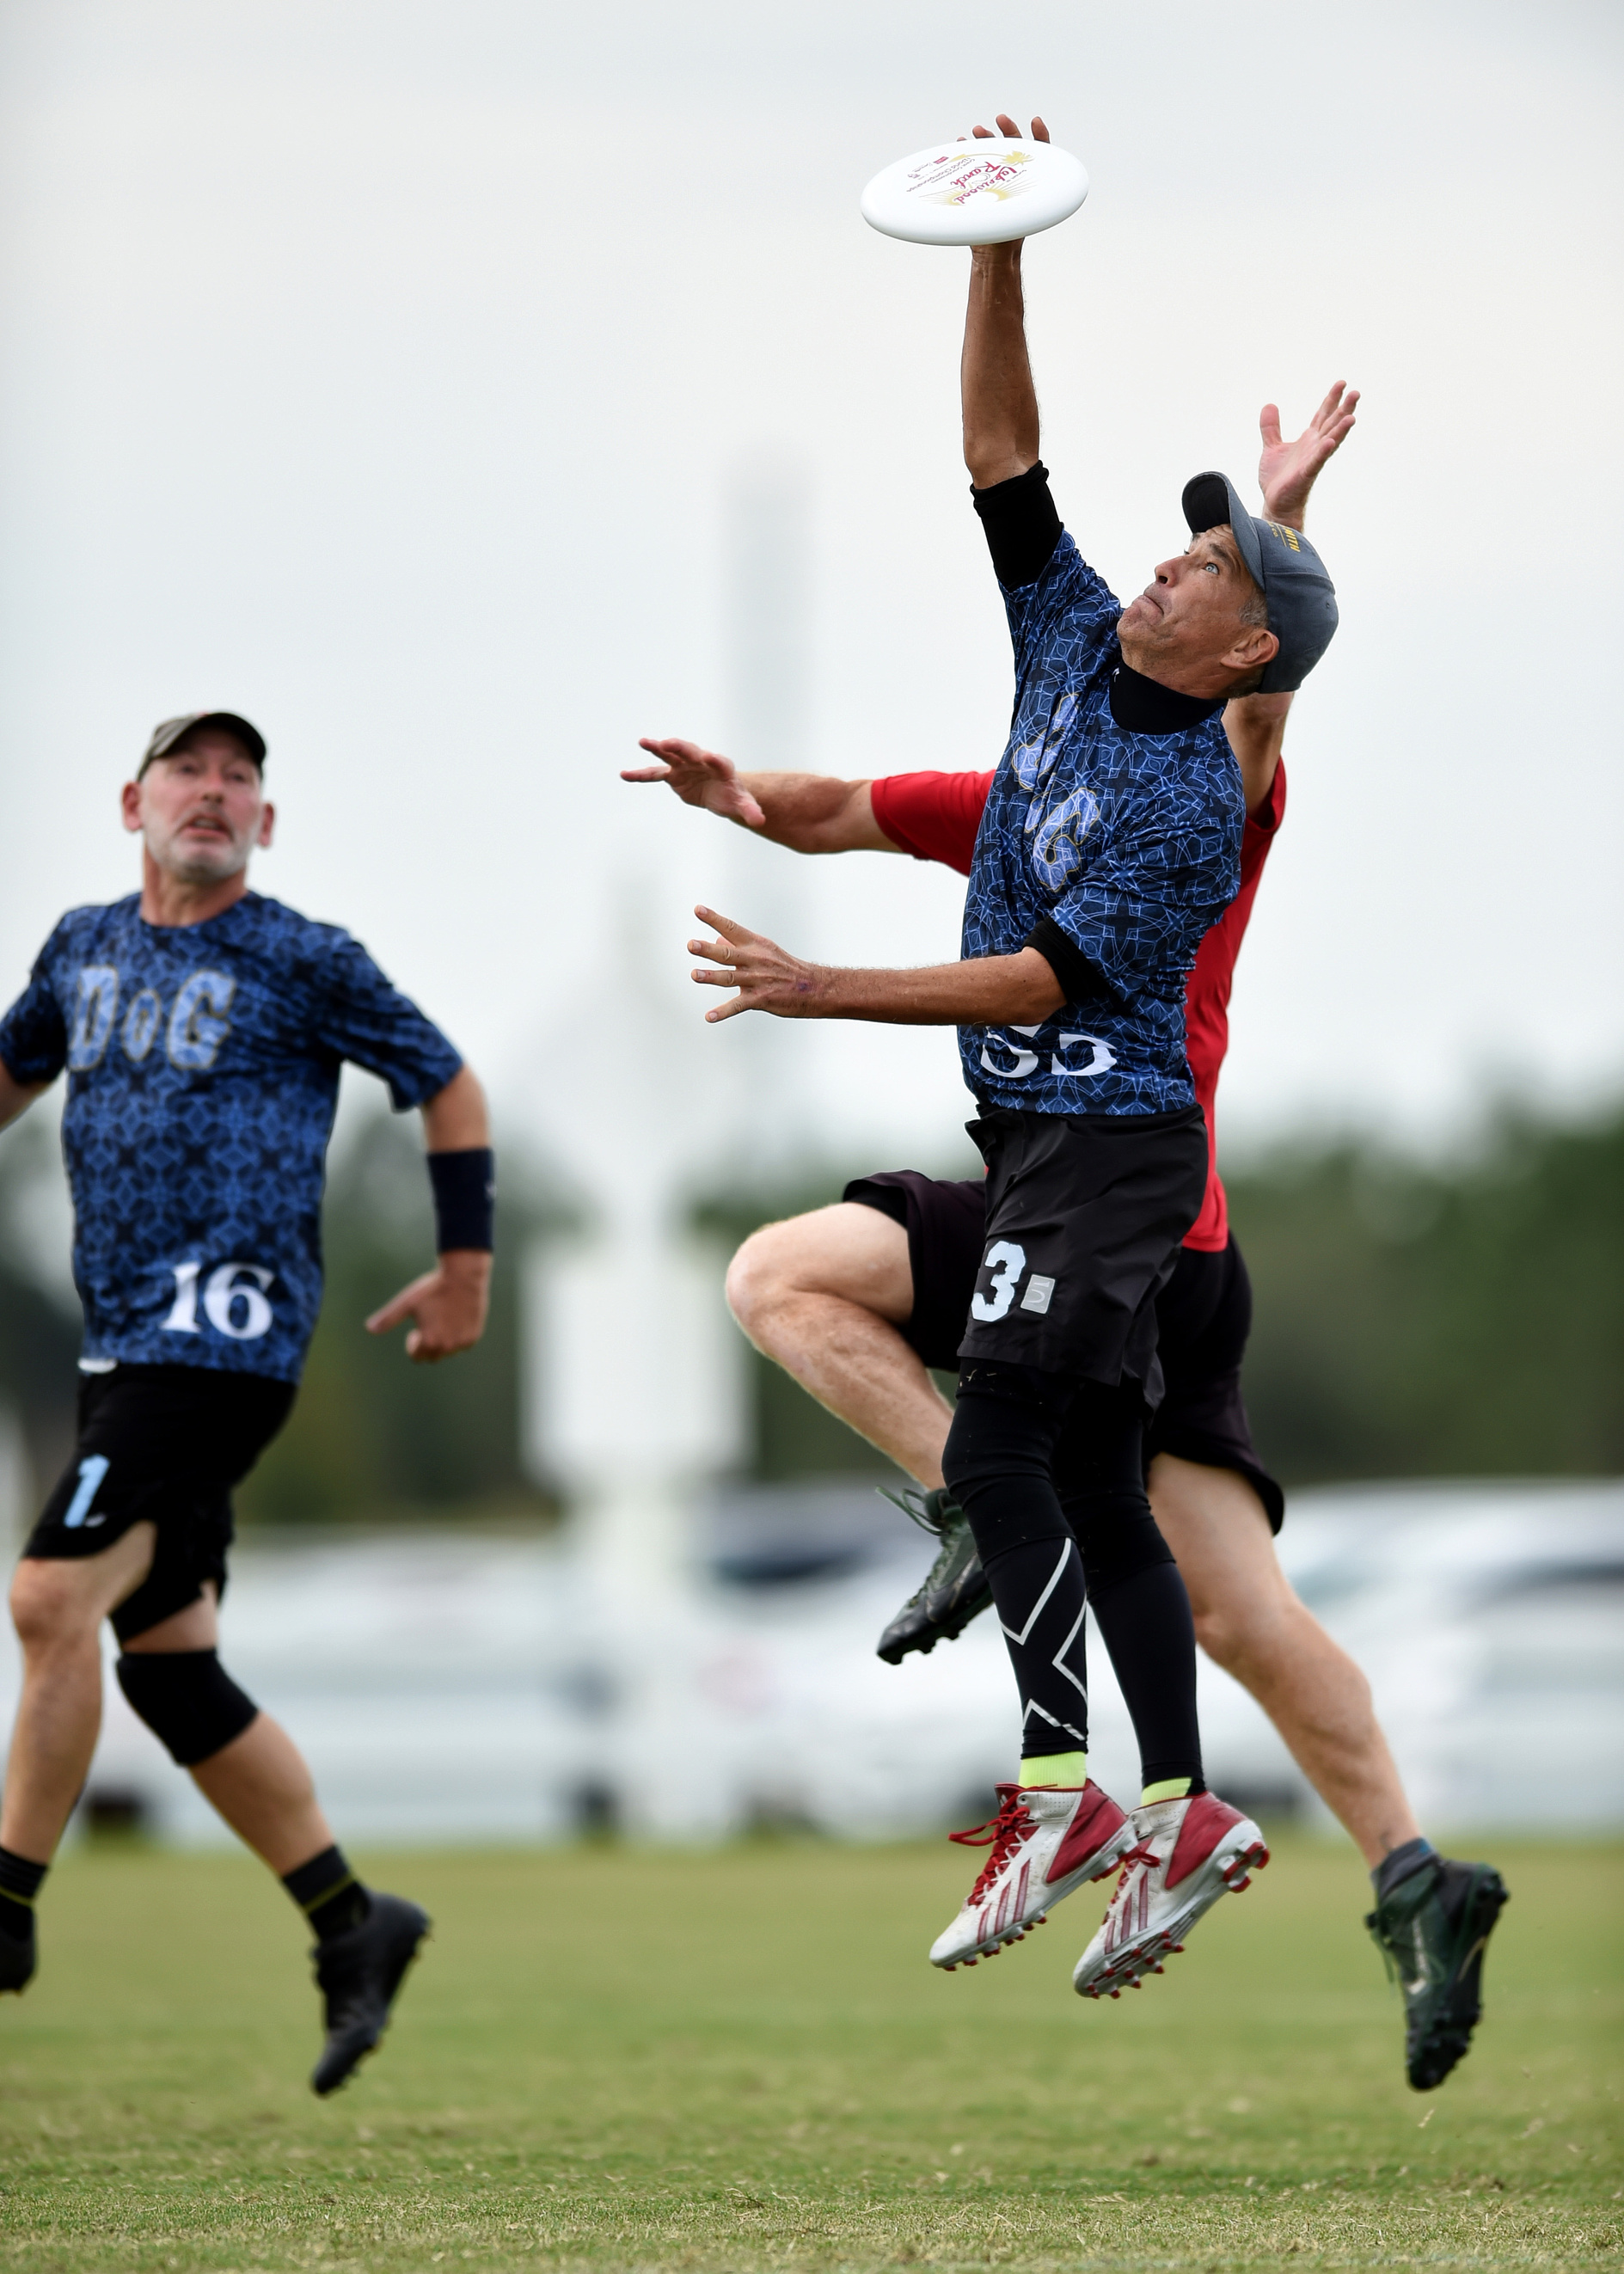 Zemo Trevathan '86 makes the game-winning catch in the quarterfinals match of the Great Grandmasters World Championship ultimate competition in Sarasota, Fla., in November. Zemo and his Boston-based team, DoG Country, won the championship.